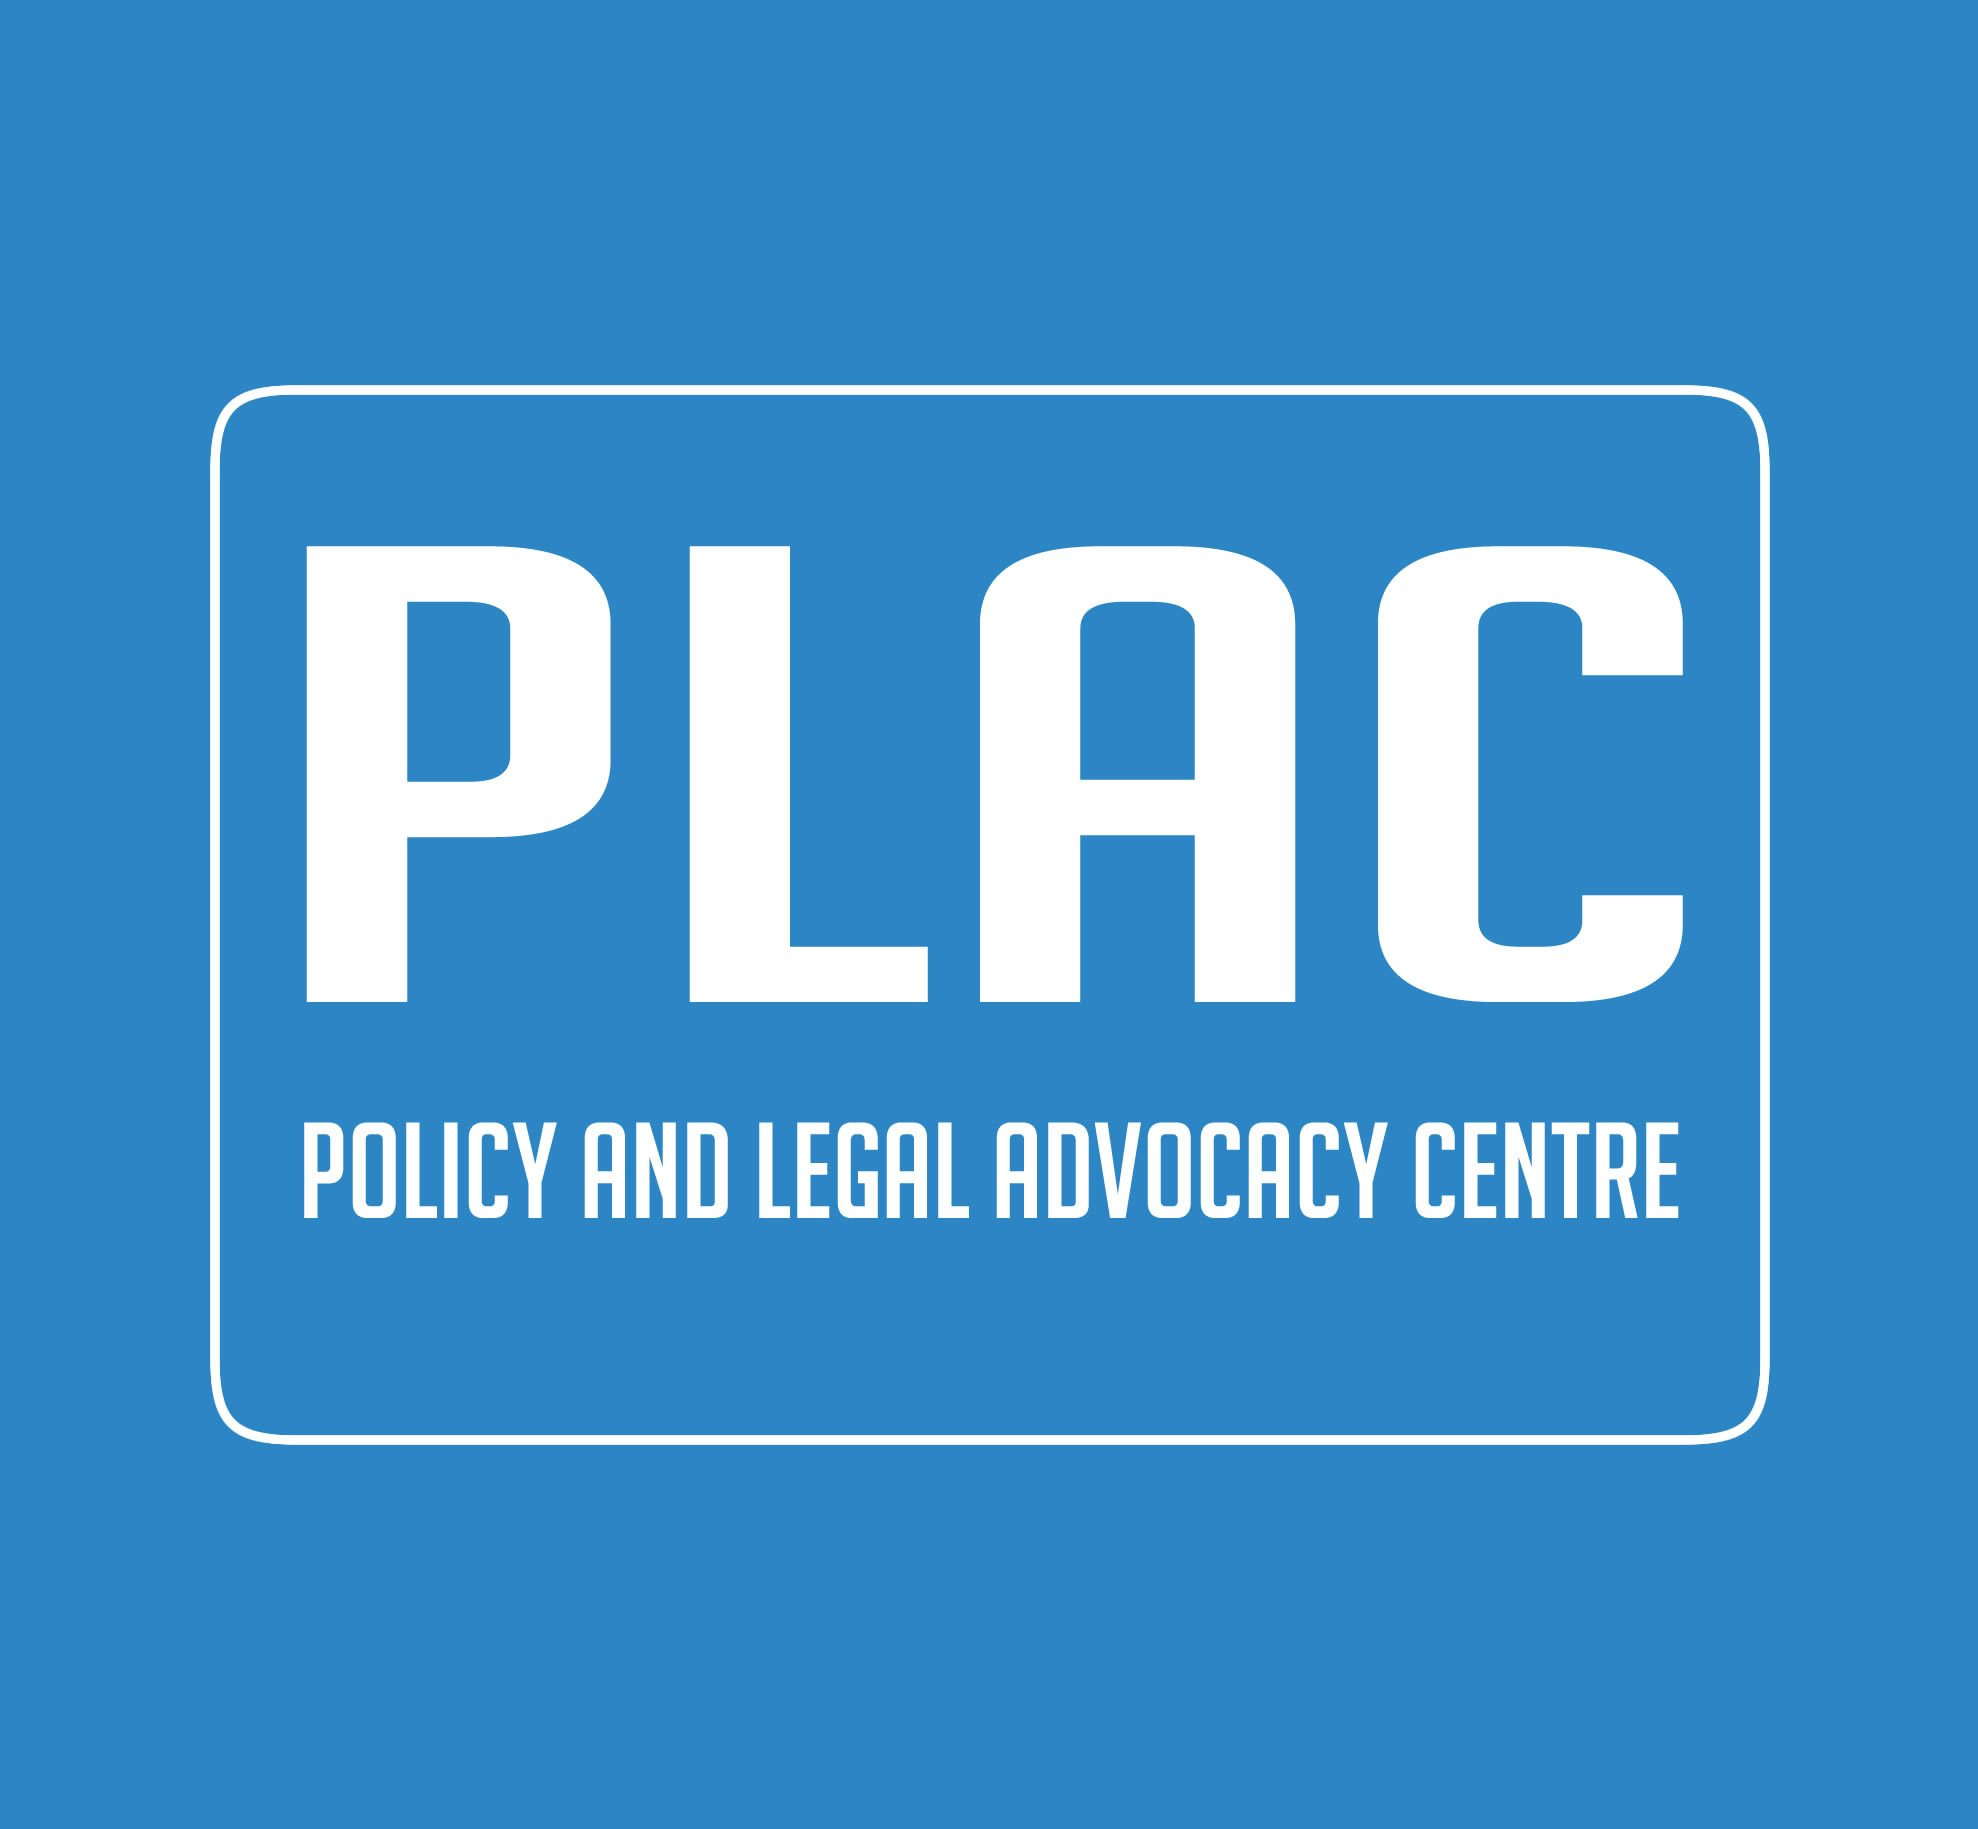 Policy and Legal Advocacy Centre (PLAC)